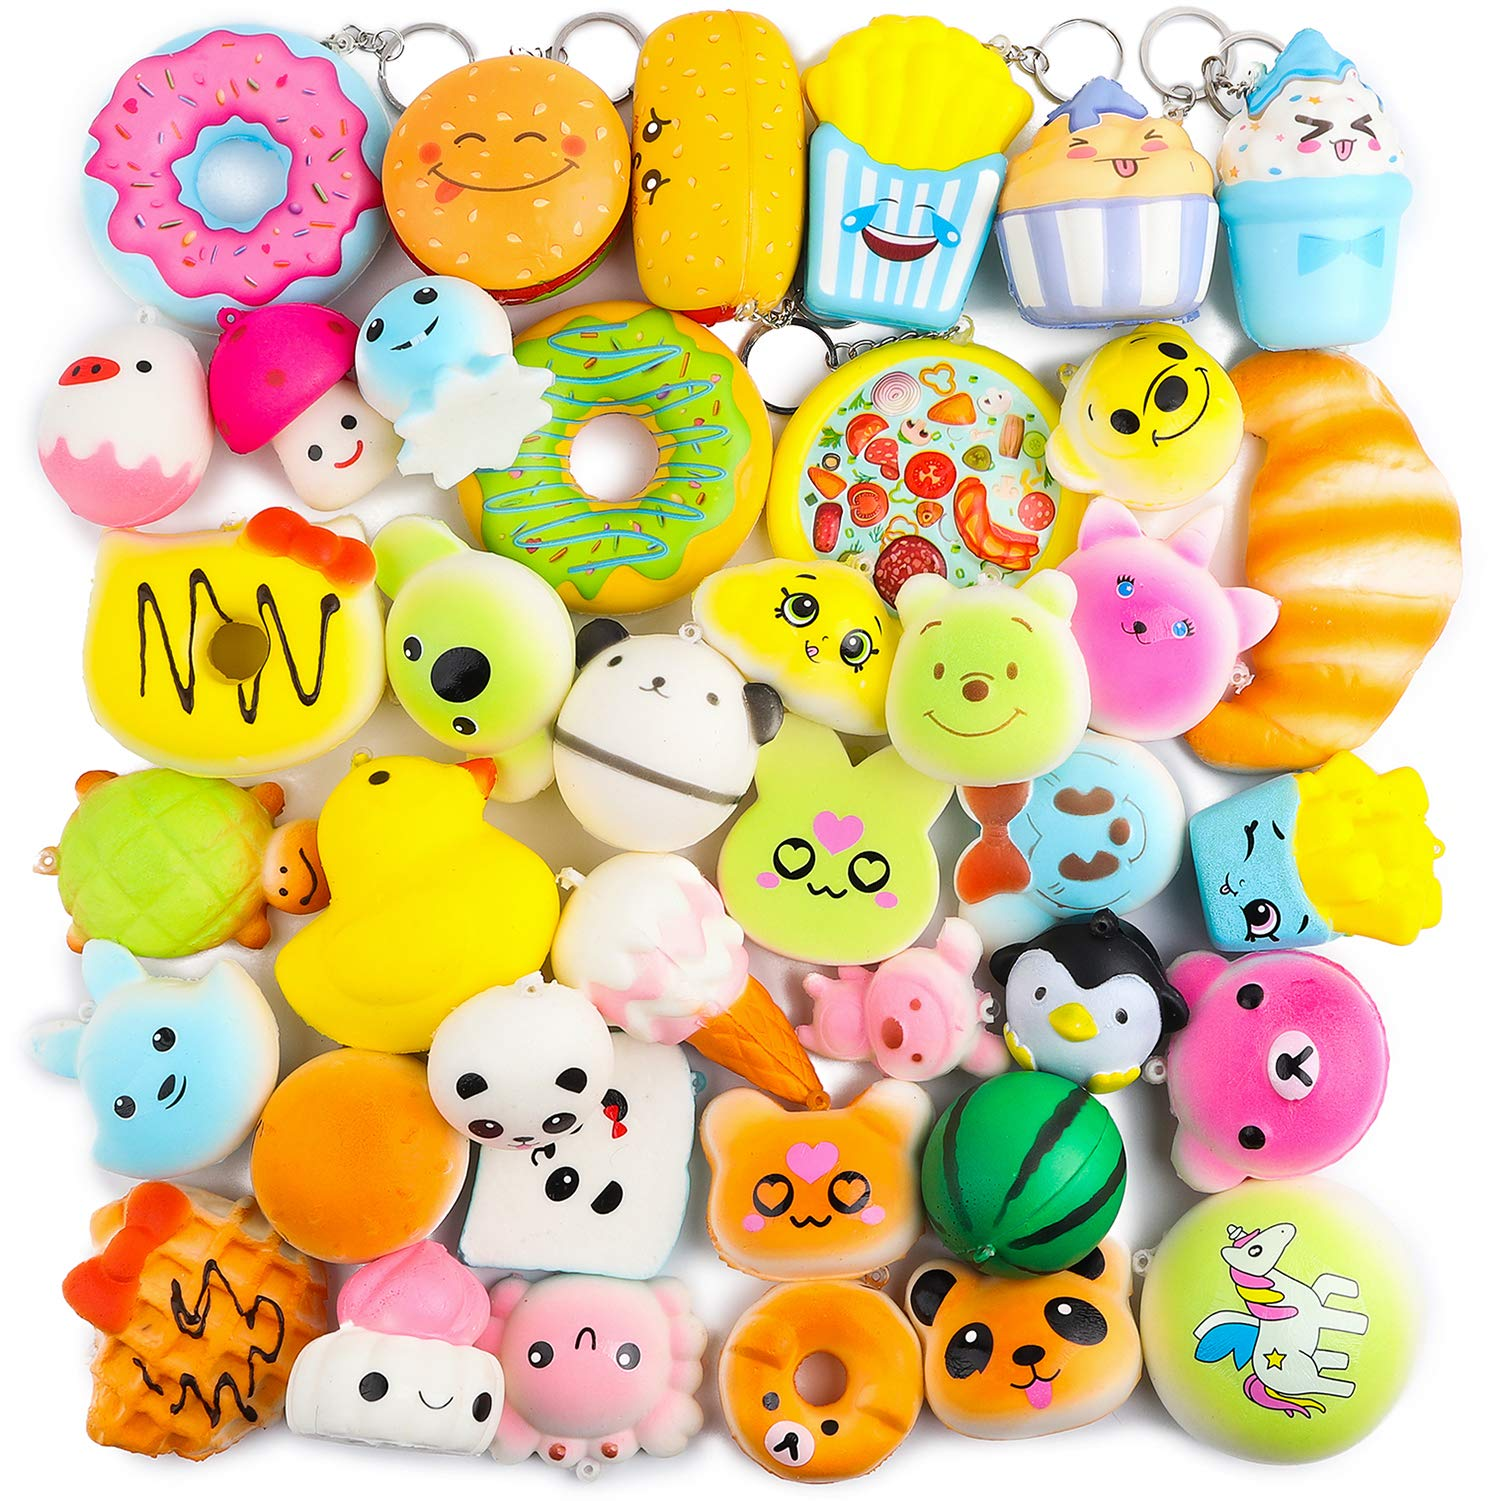 BeYumi Random 40 PCS Mini Squishy Toys 32 Kawaii Food Cream Scented Slow Rising Squishy 8 Colorful Food Squishy Set Soft Simulation Squishy Toy for Kids Adults Party Favor